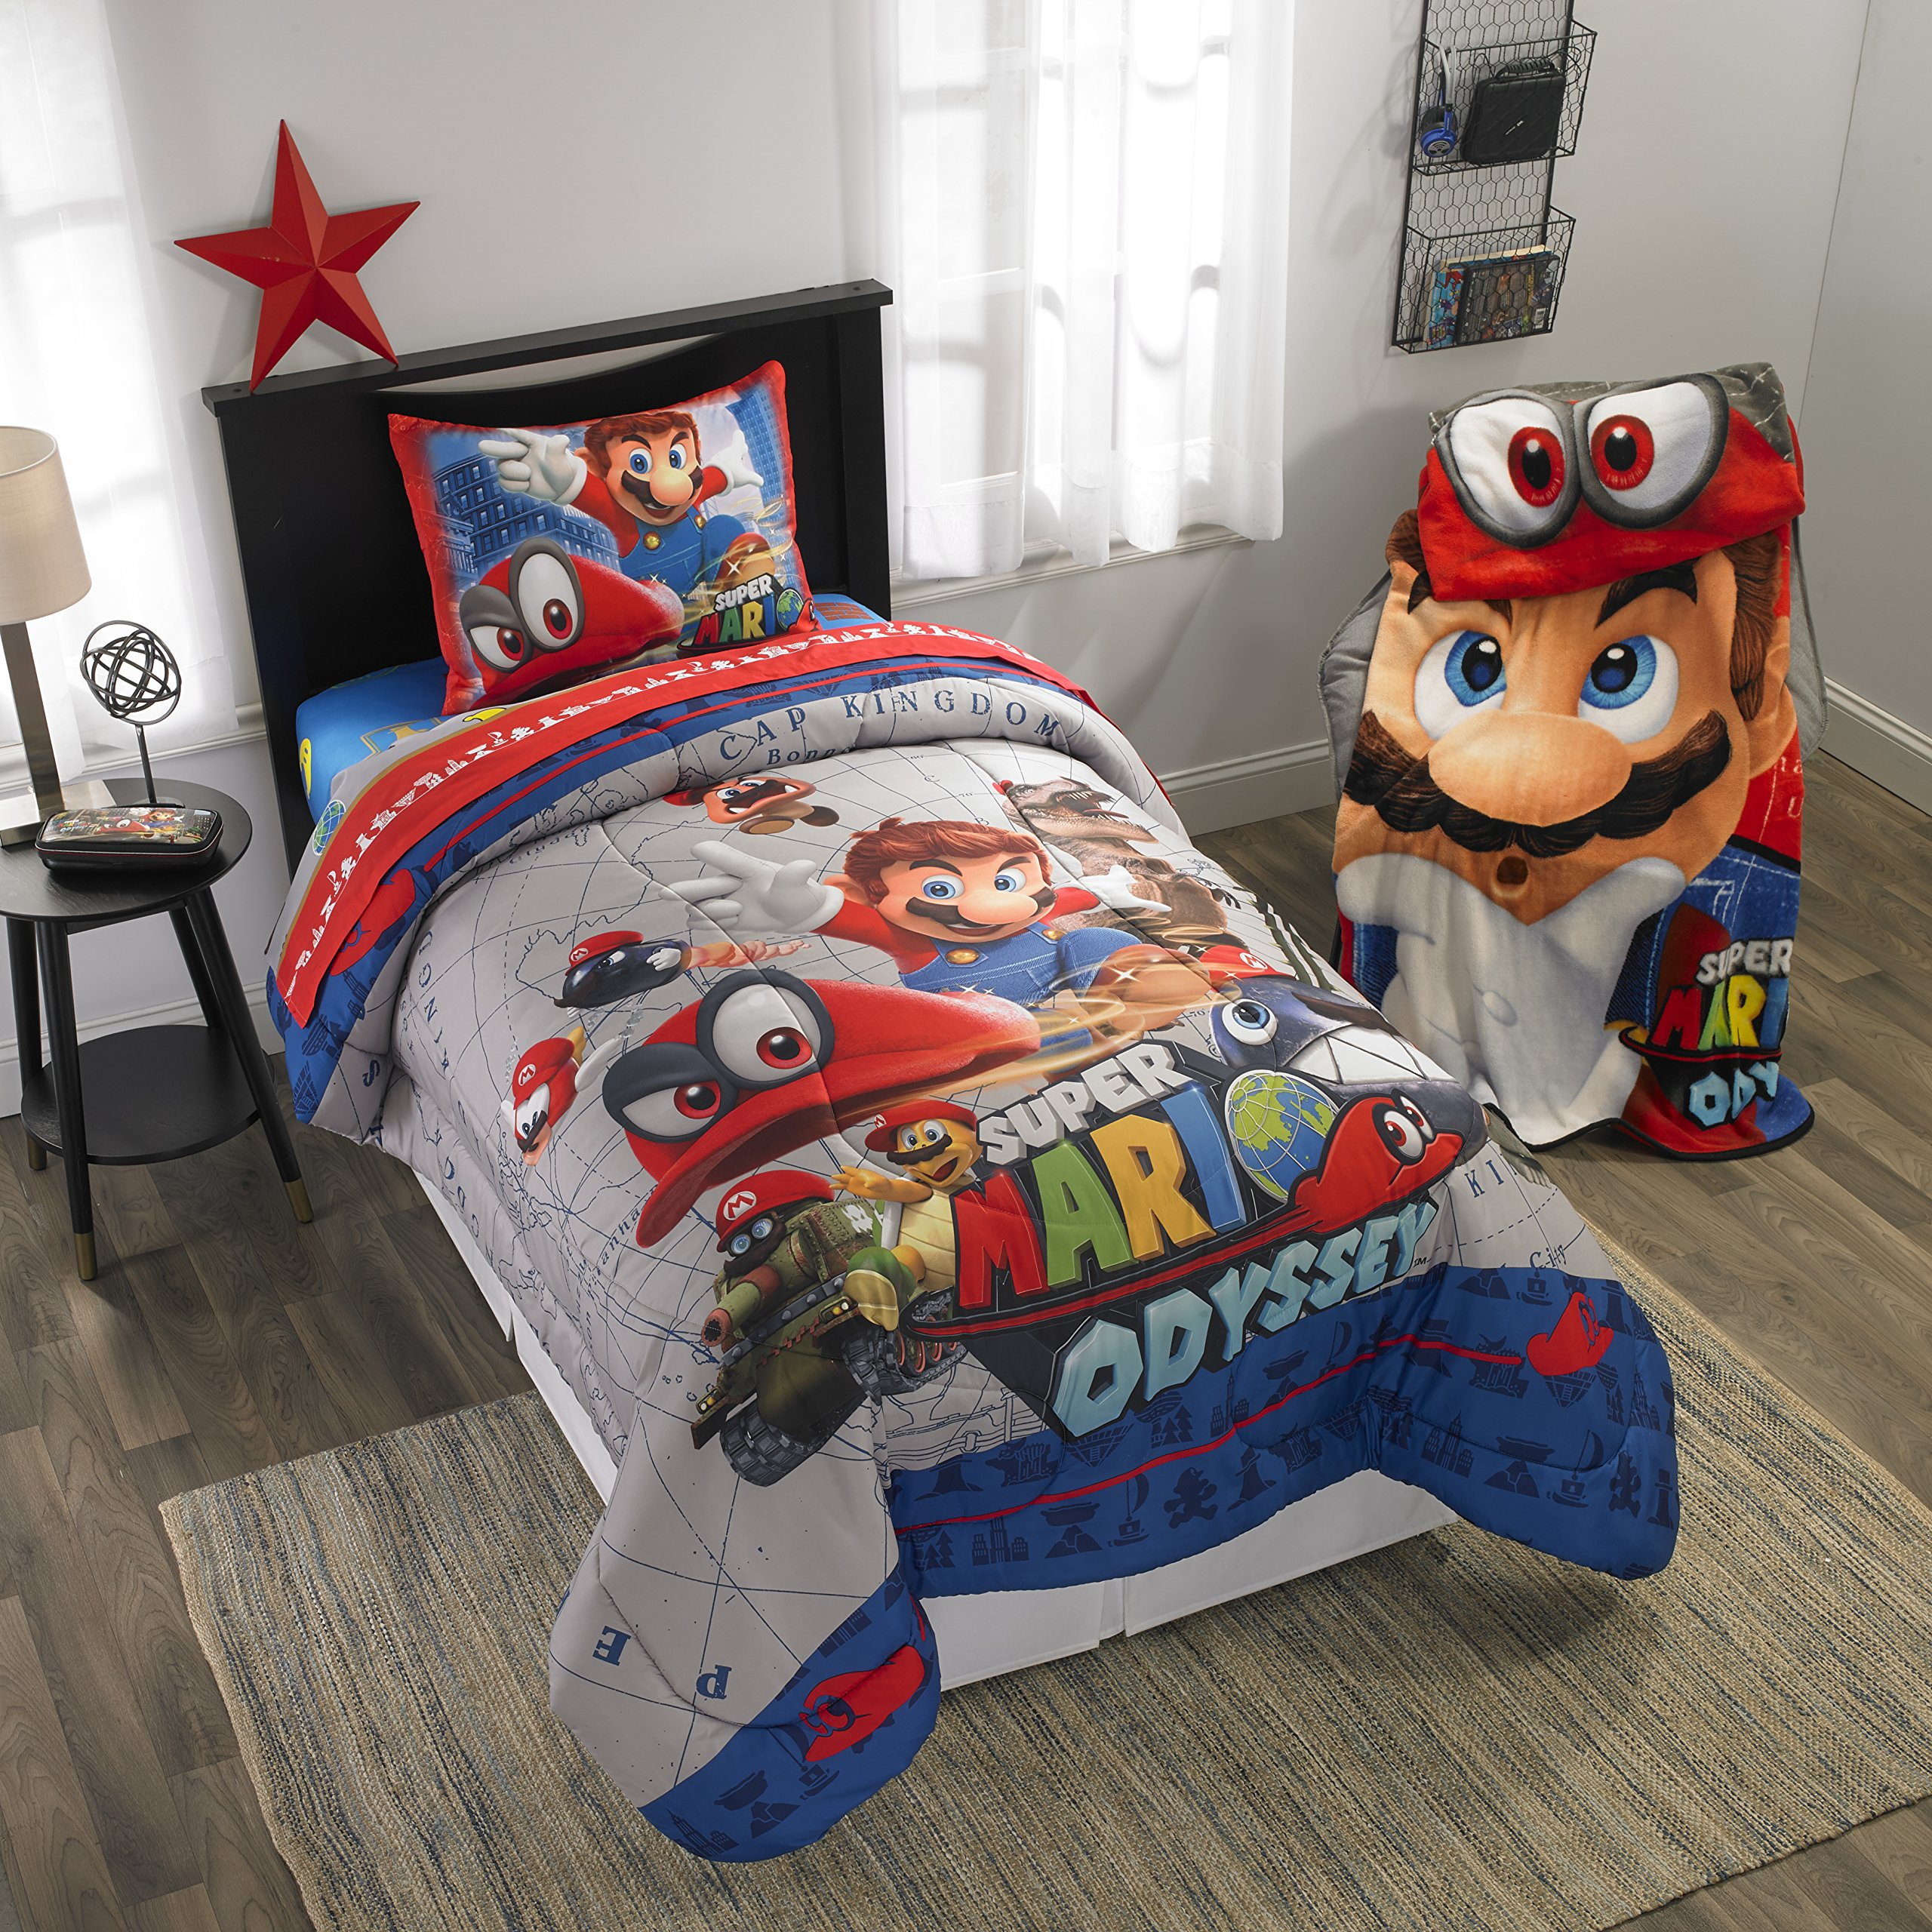 A&L 3 Piece Kids Blue Super Mario Sheet Set Twin, Red Odyssey Bedding Video Games Bed Sheets Tanks Hats Buildings Fun Bright Bold Soft Cozy Comfortable Yellow Green Brown Durable, Polyester